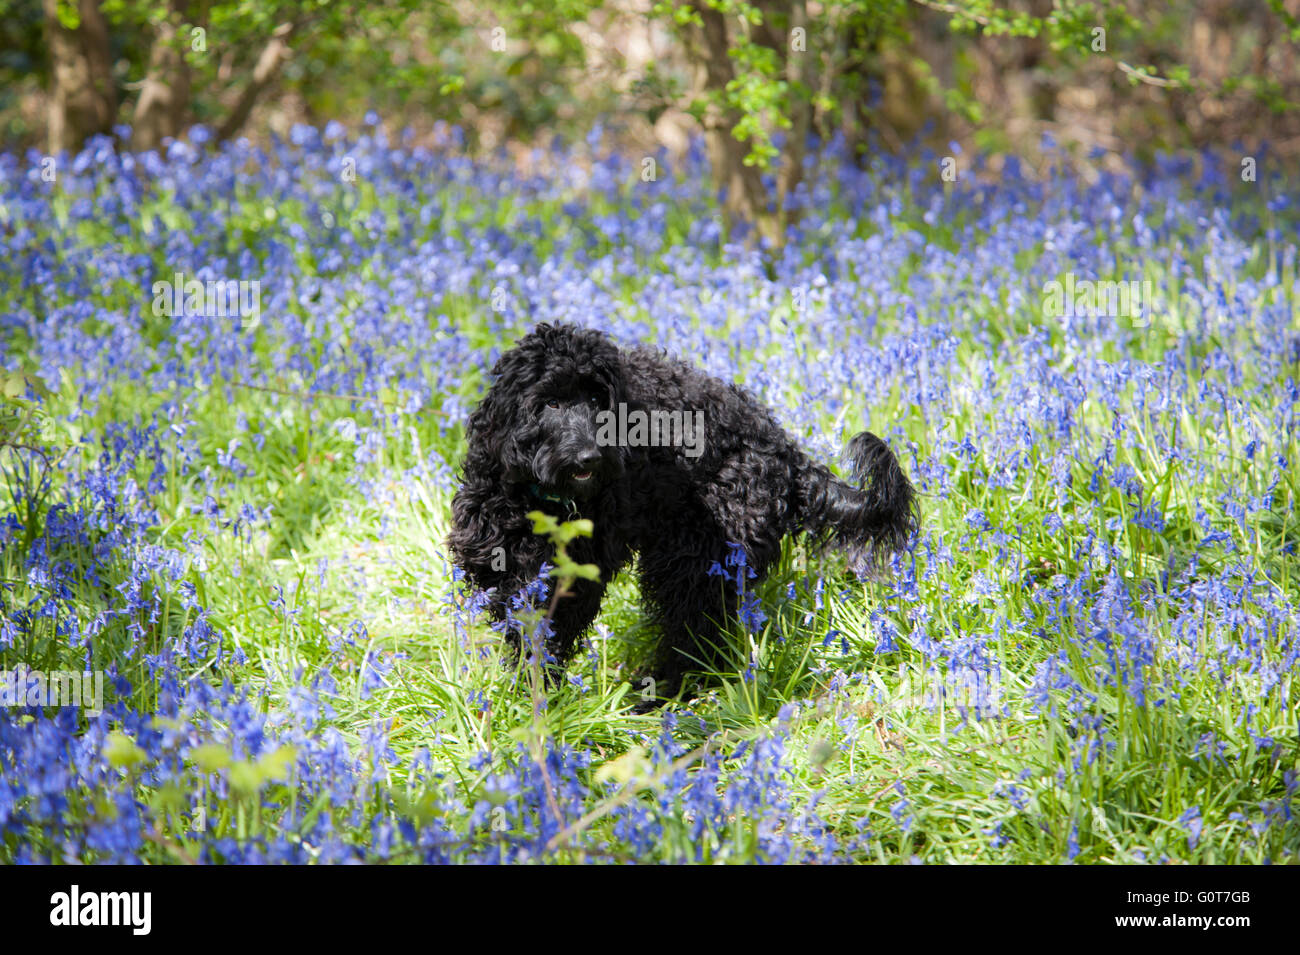 A young black Cockapoo dog on a walk in the woods on a sunny day. Stock Photo